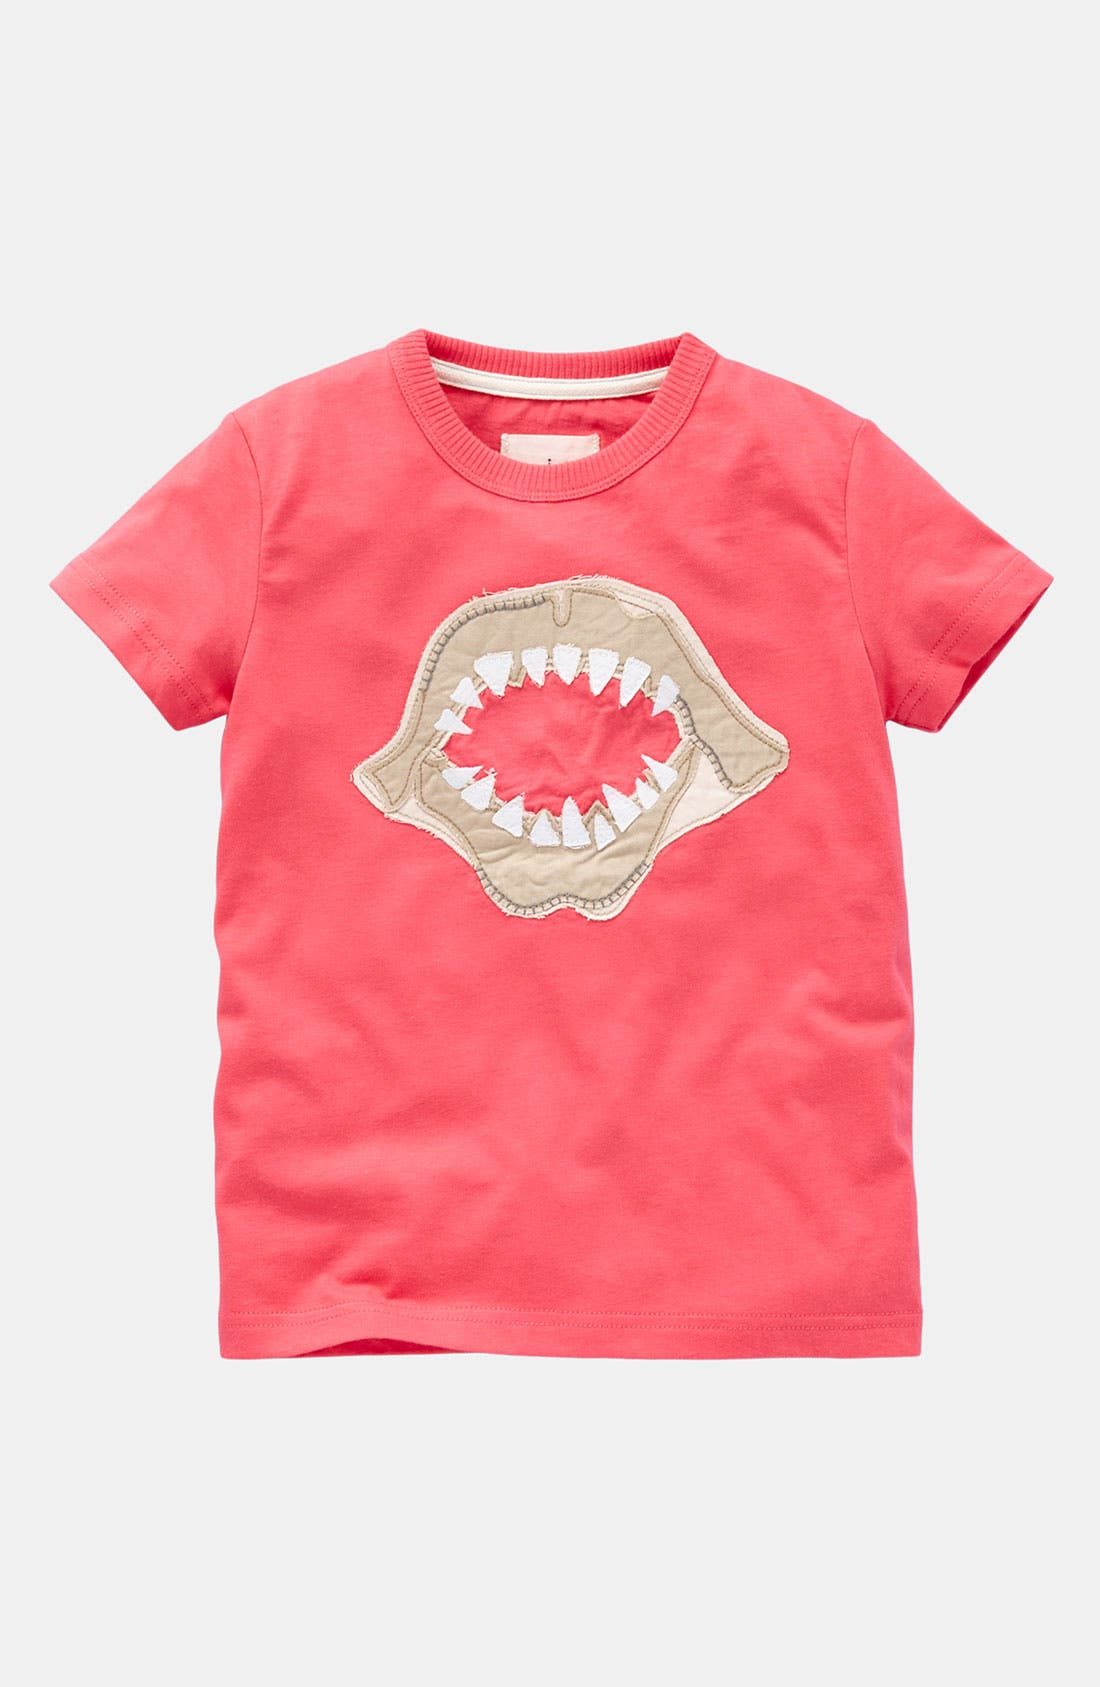 Alternate Image 1 Selected - Mini Boden 'Nautical' T-Shirt (Toddler)